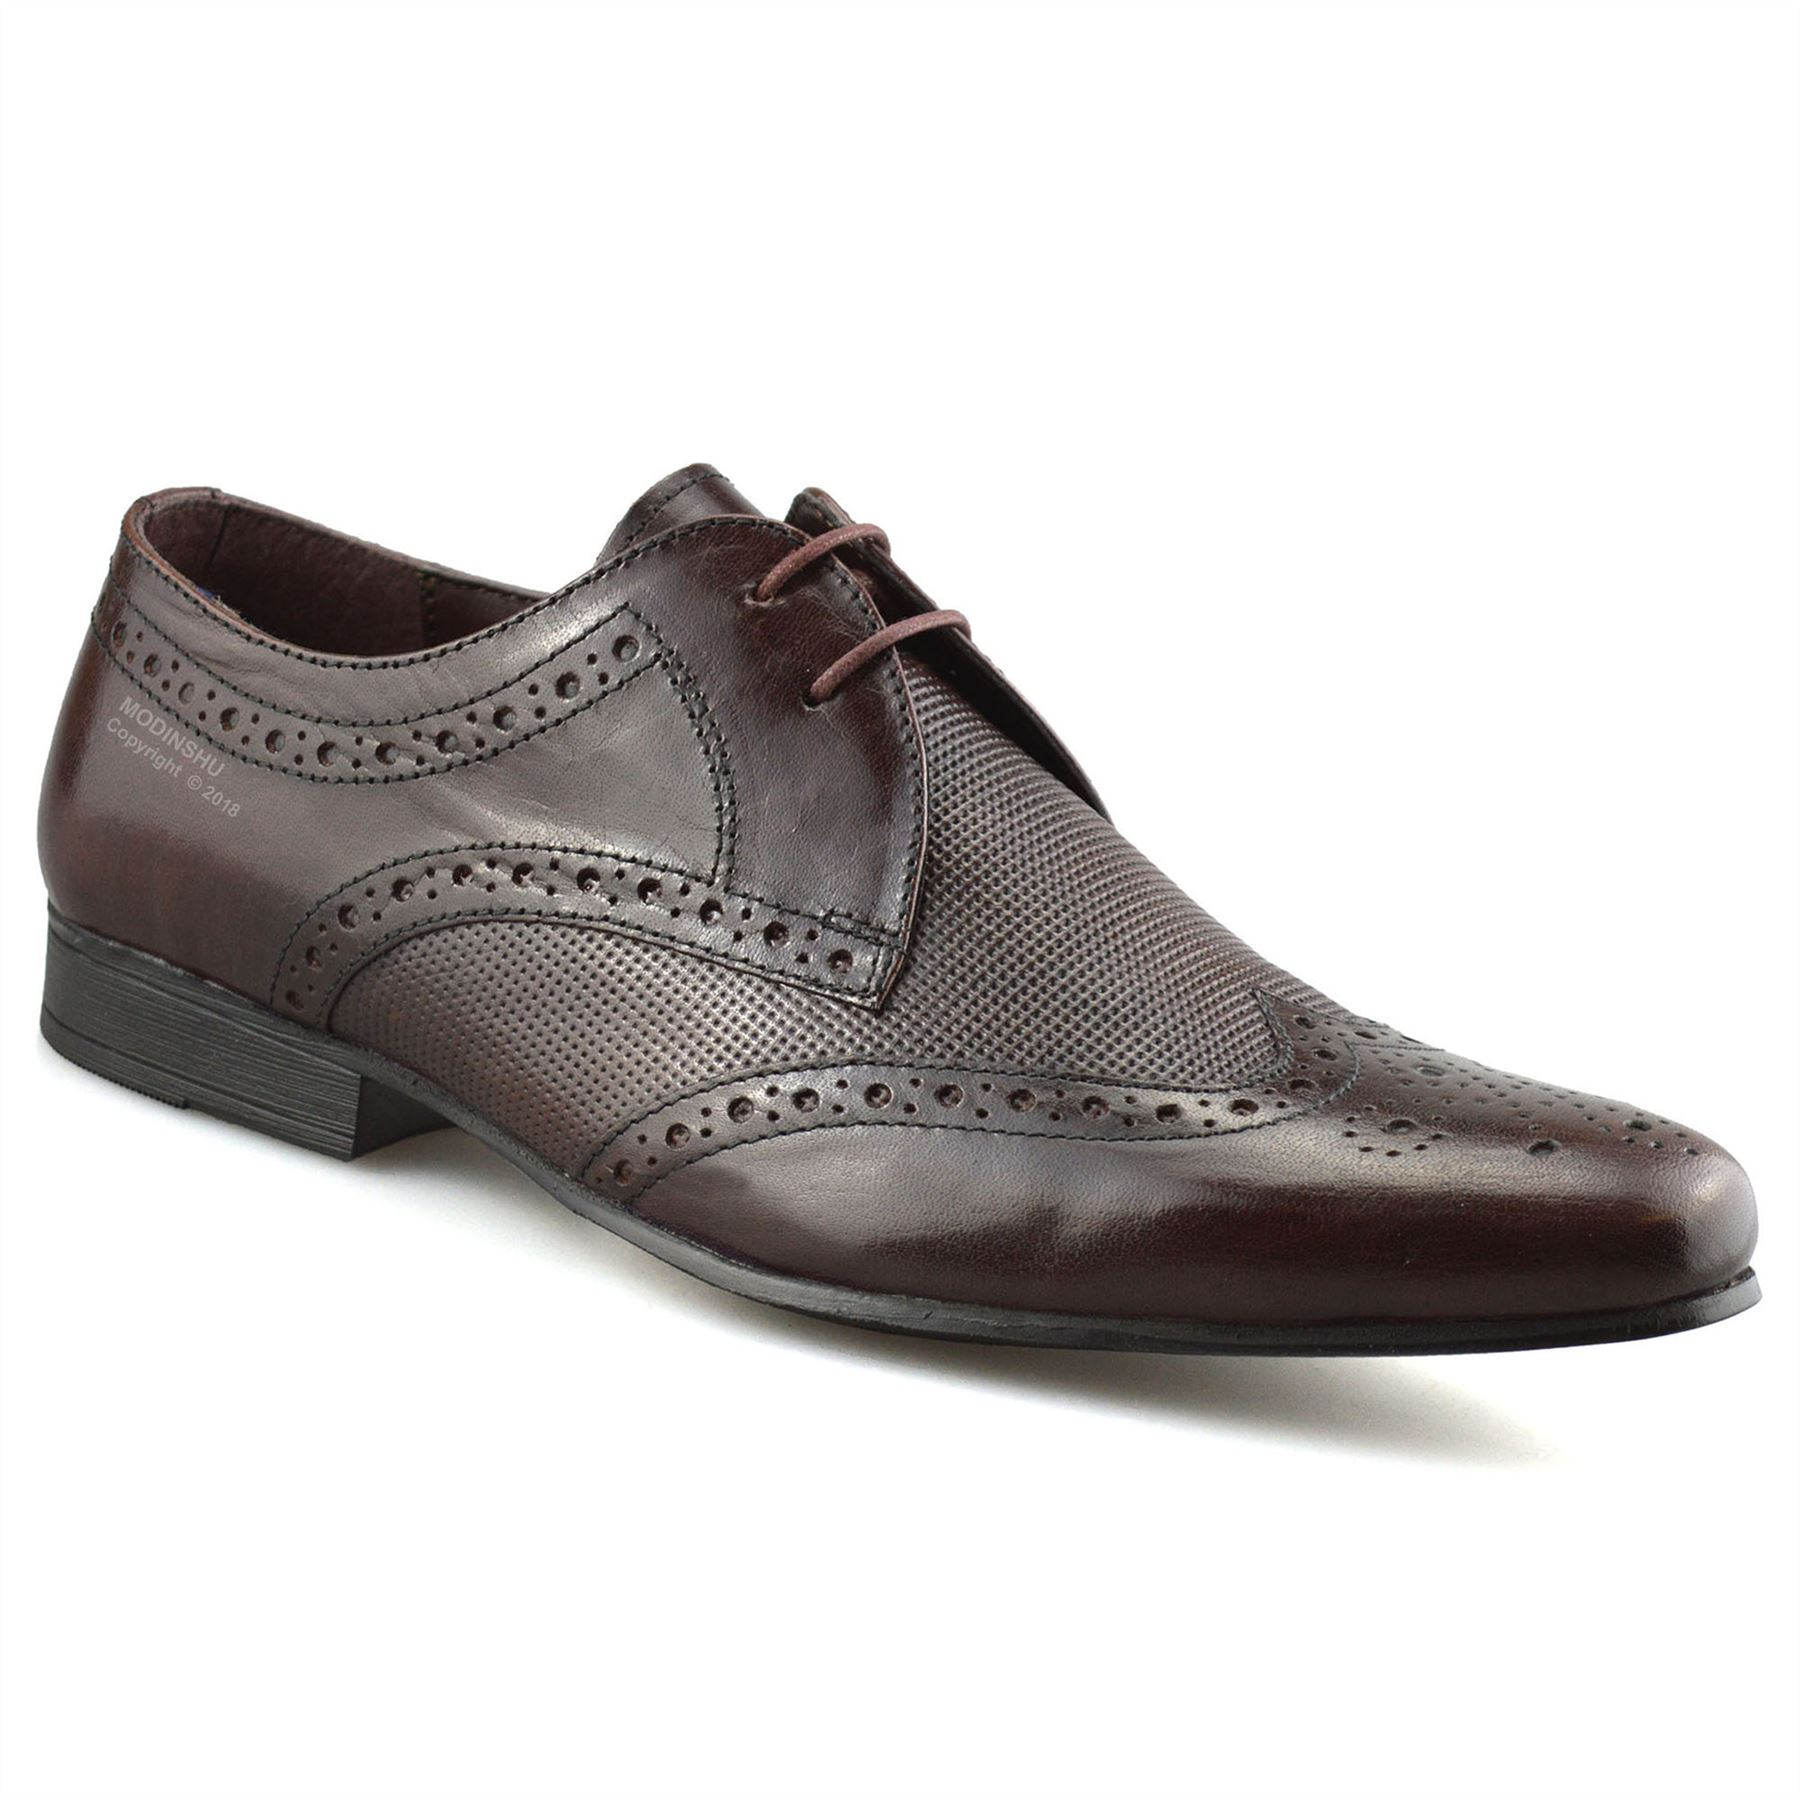 Mens-Leather-Lace-Up-Brogues-Smart-Formal-Office-Casual-Oxford-Brogue-Shoes-Size thumbnail 9